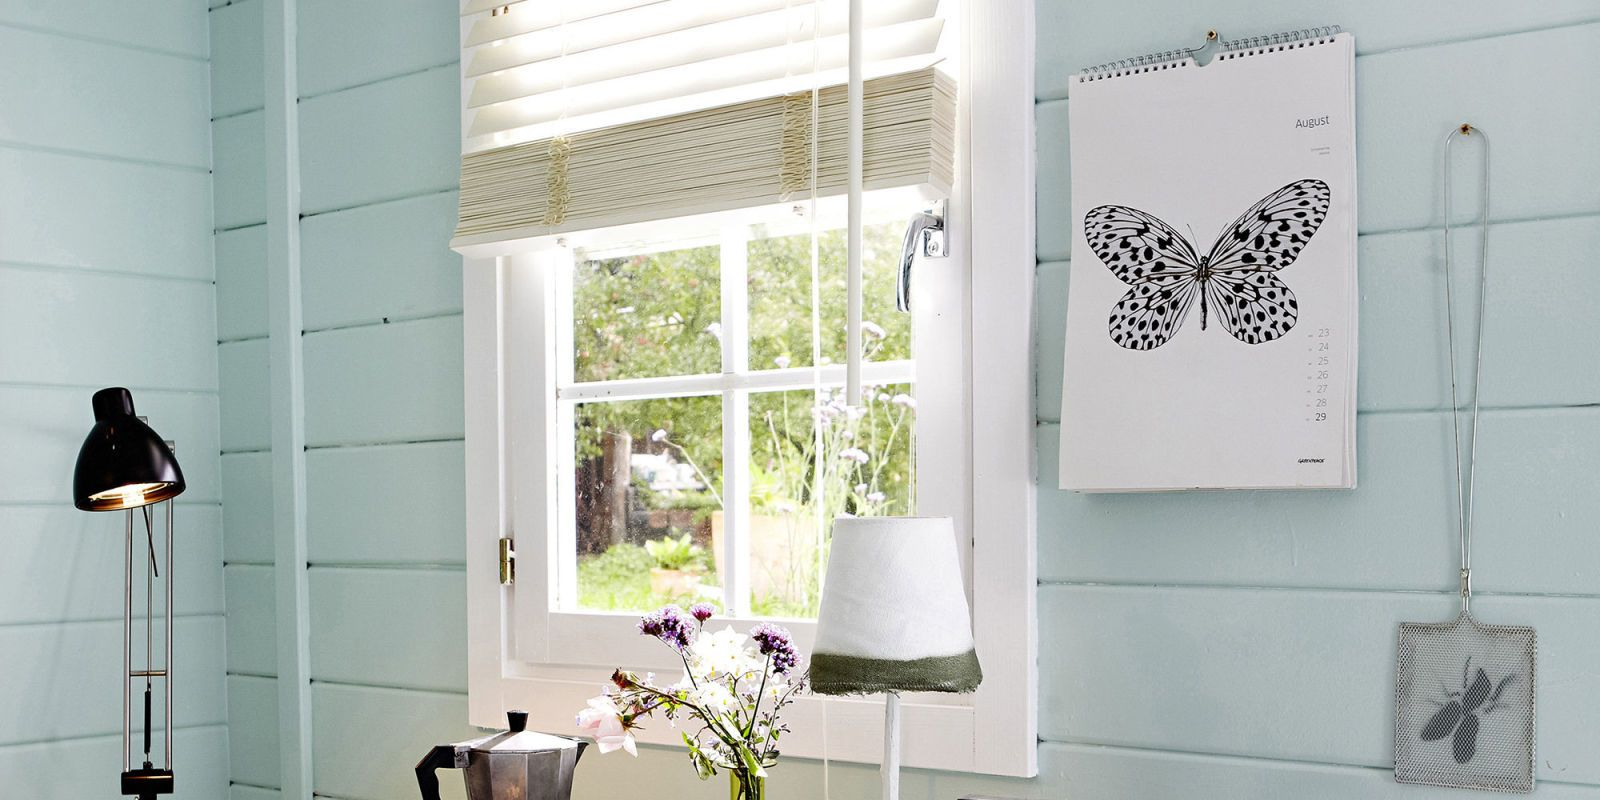 Both Practical And Decorative, Well Chosen Curtains And Blinds Can Have A  Transformative Effect On Any Room. Follow Our Ideas For Inspiring Window ...